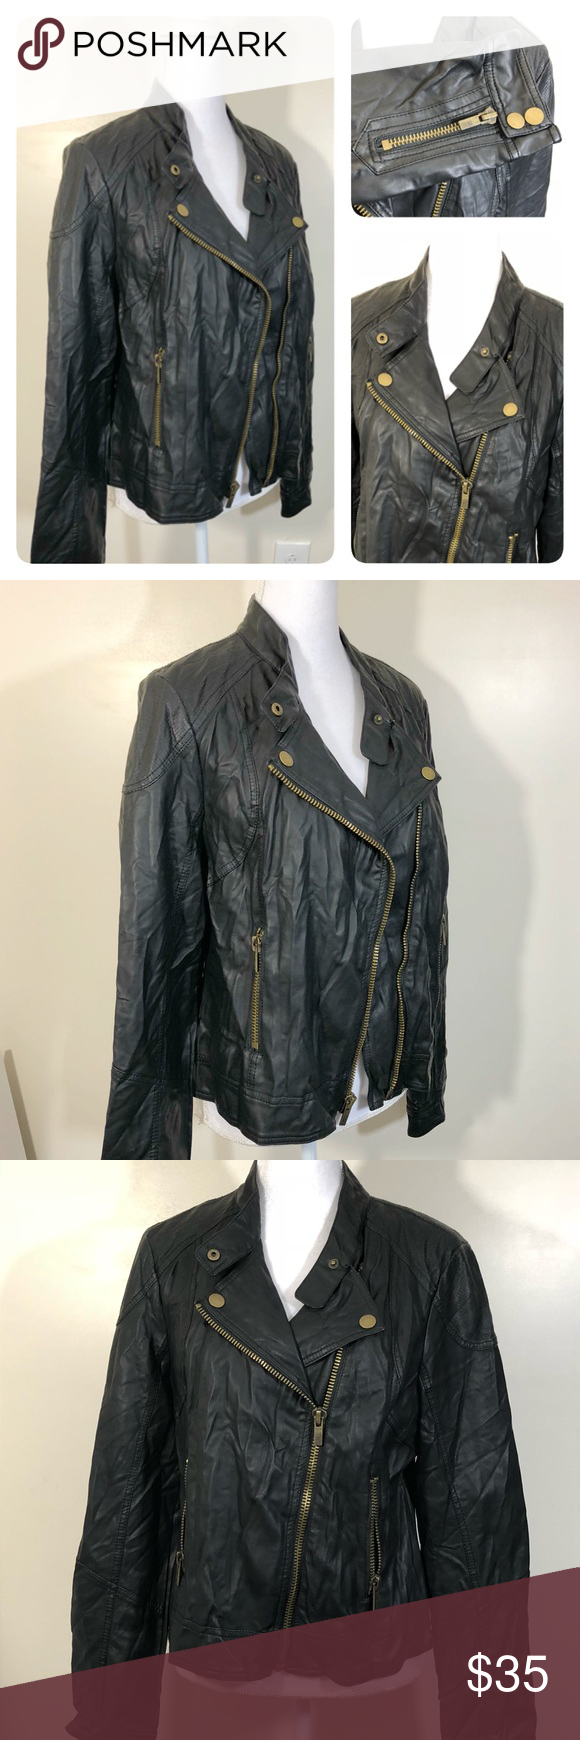 Women's Black Rivet LARGE faux leather jacket ⬇️ Faux